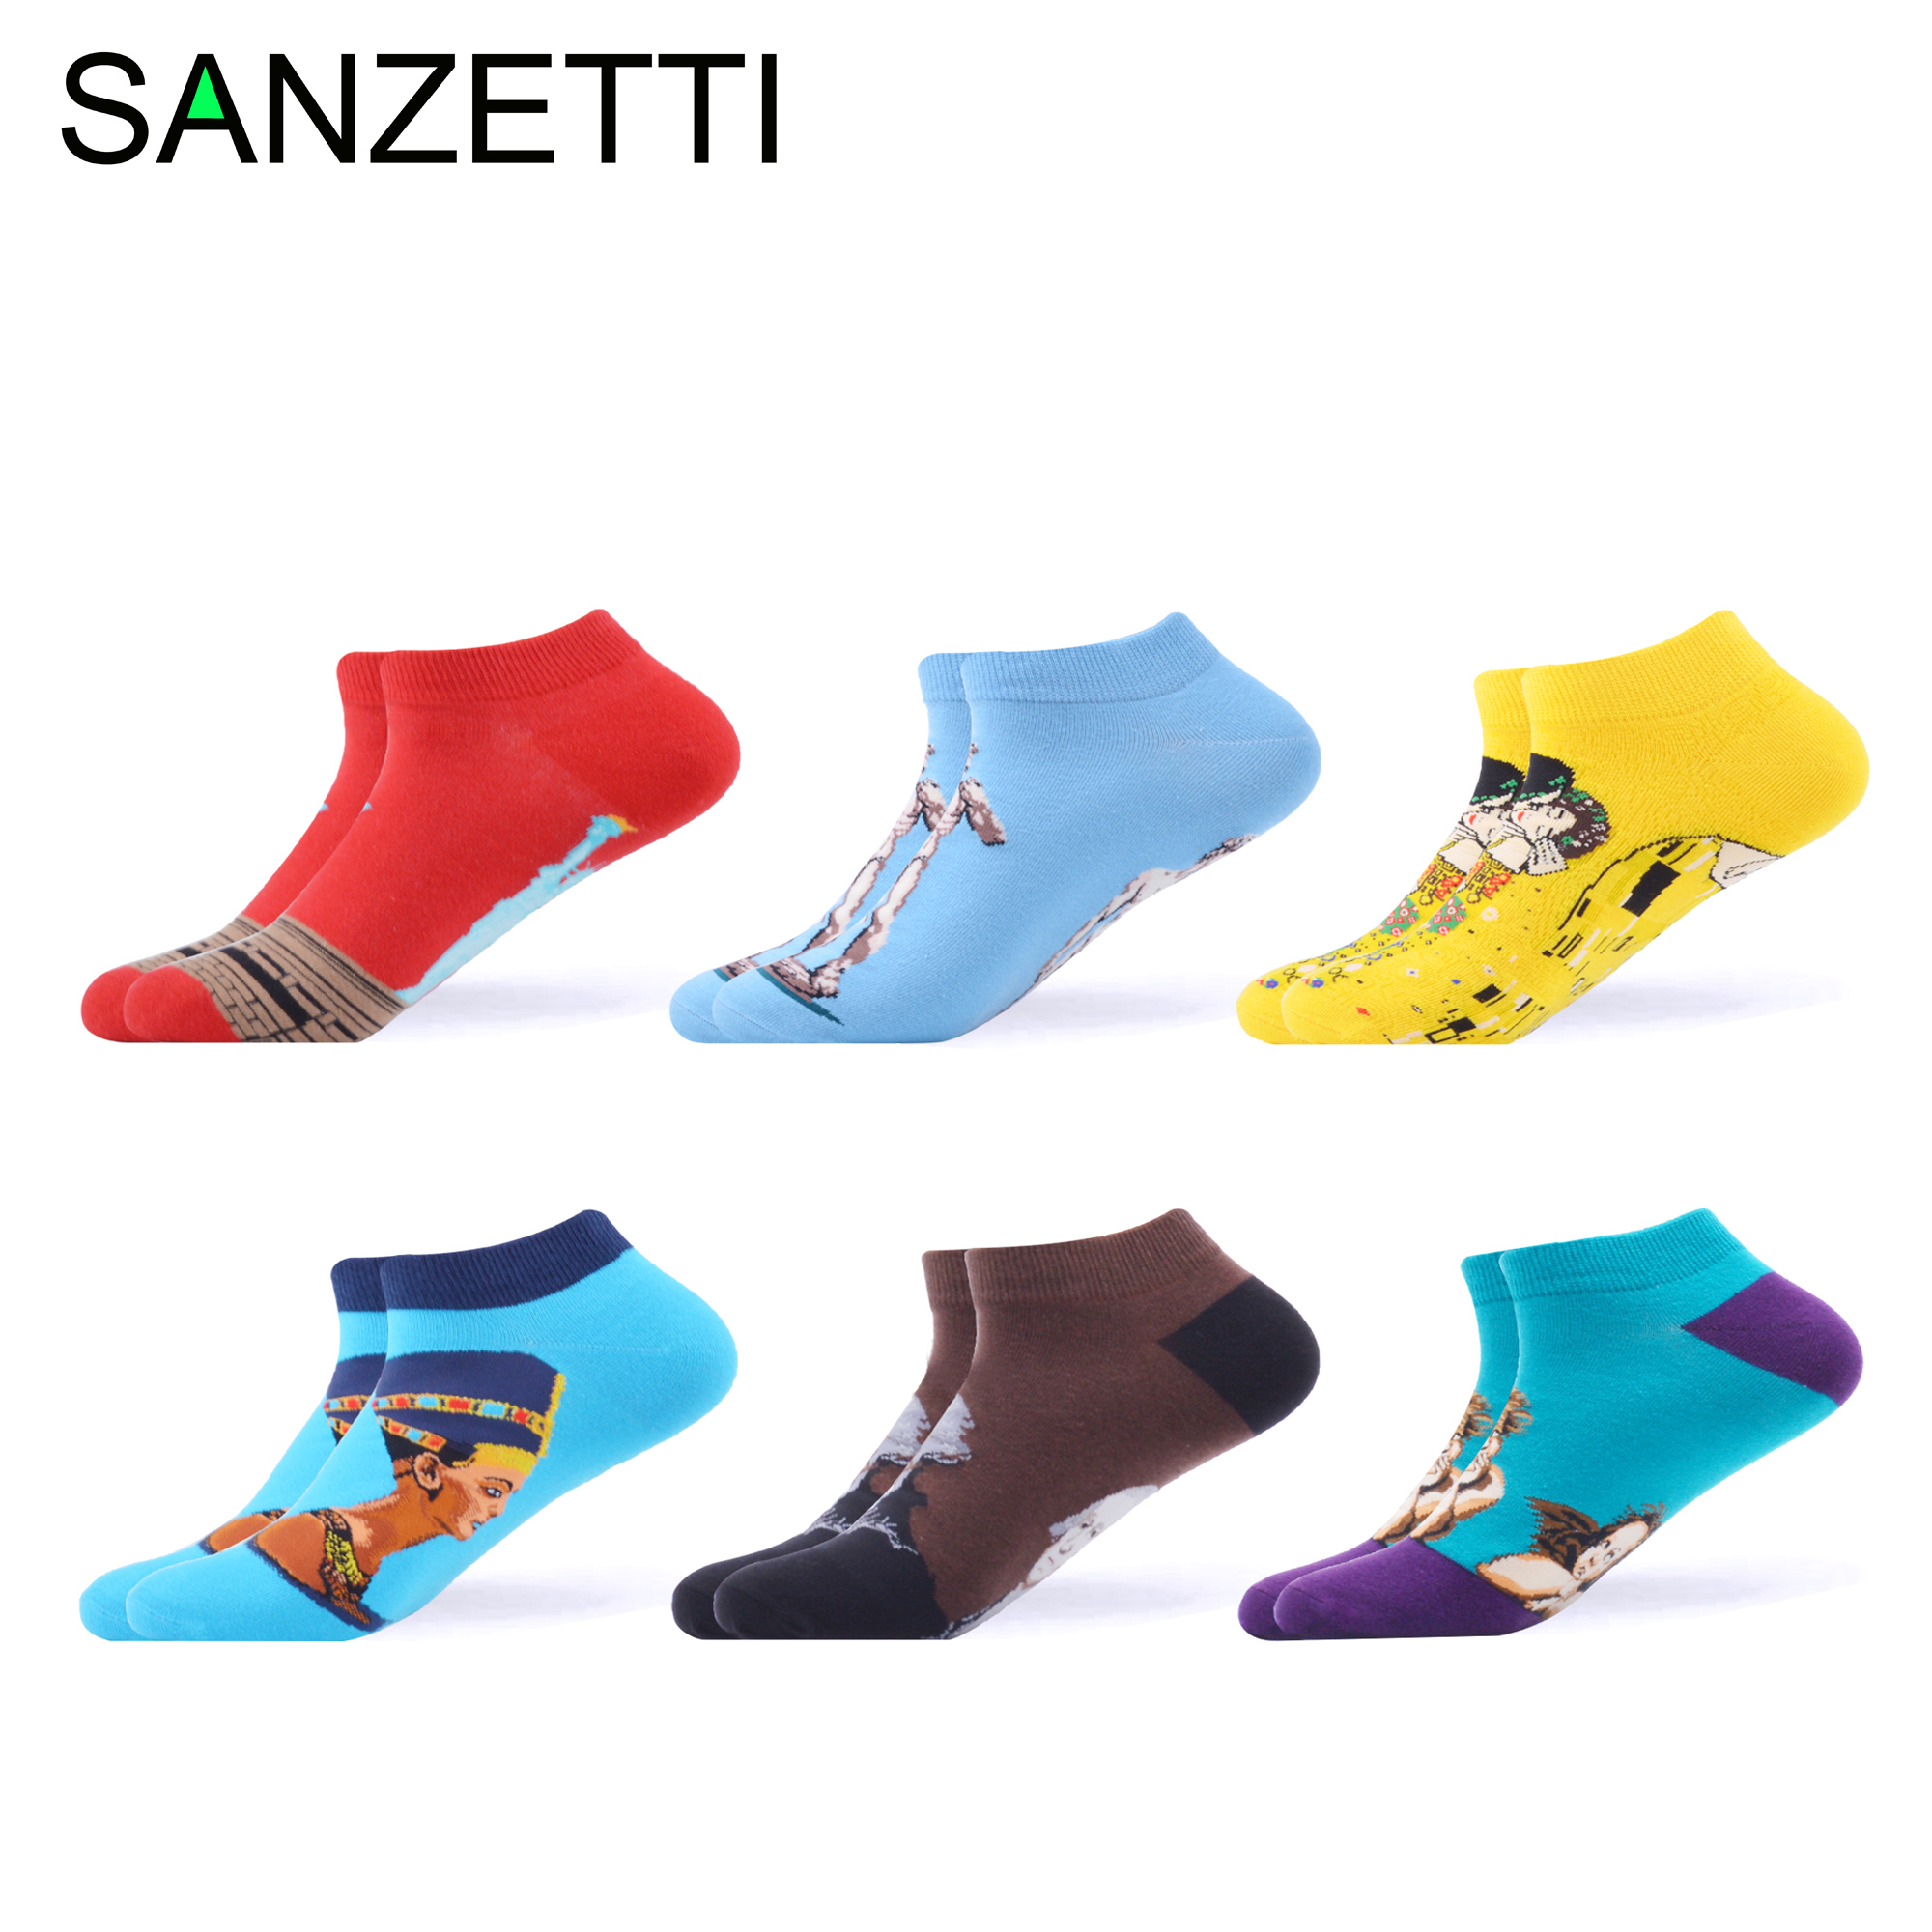 SANZETTI 6 Pair/2020 Men's Summer Happy Colorful Combed Cotton Socks Harajuku Statue Of Liberty Pattern Business Casual Socks